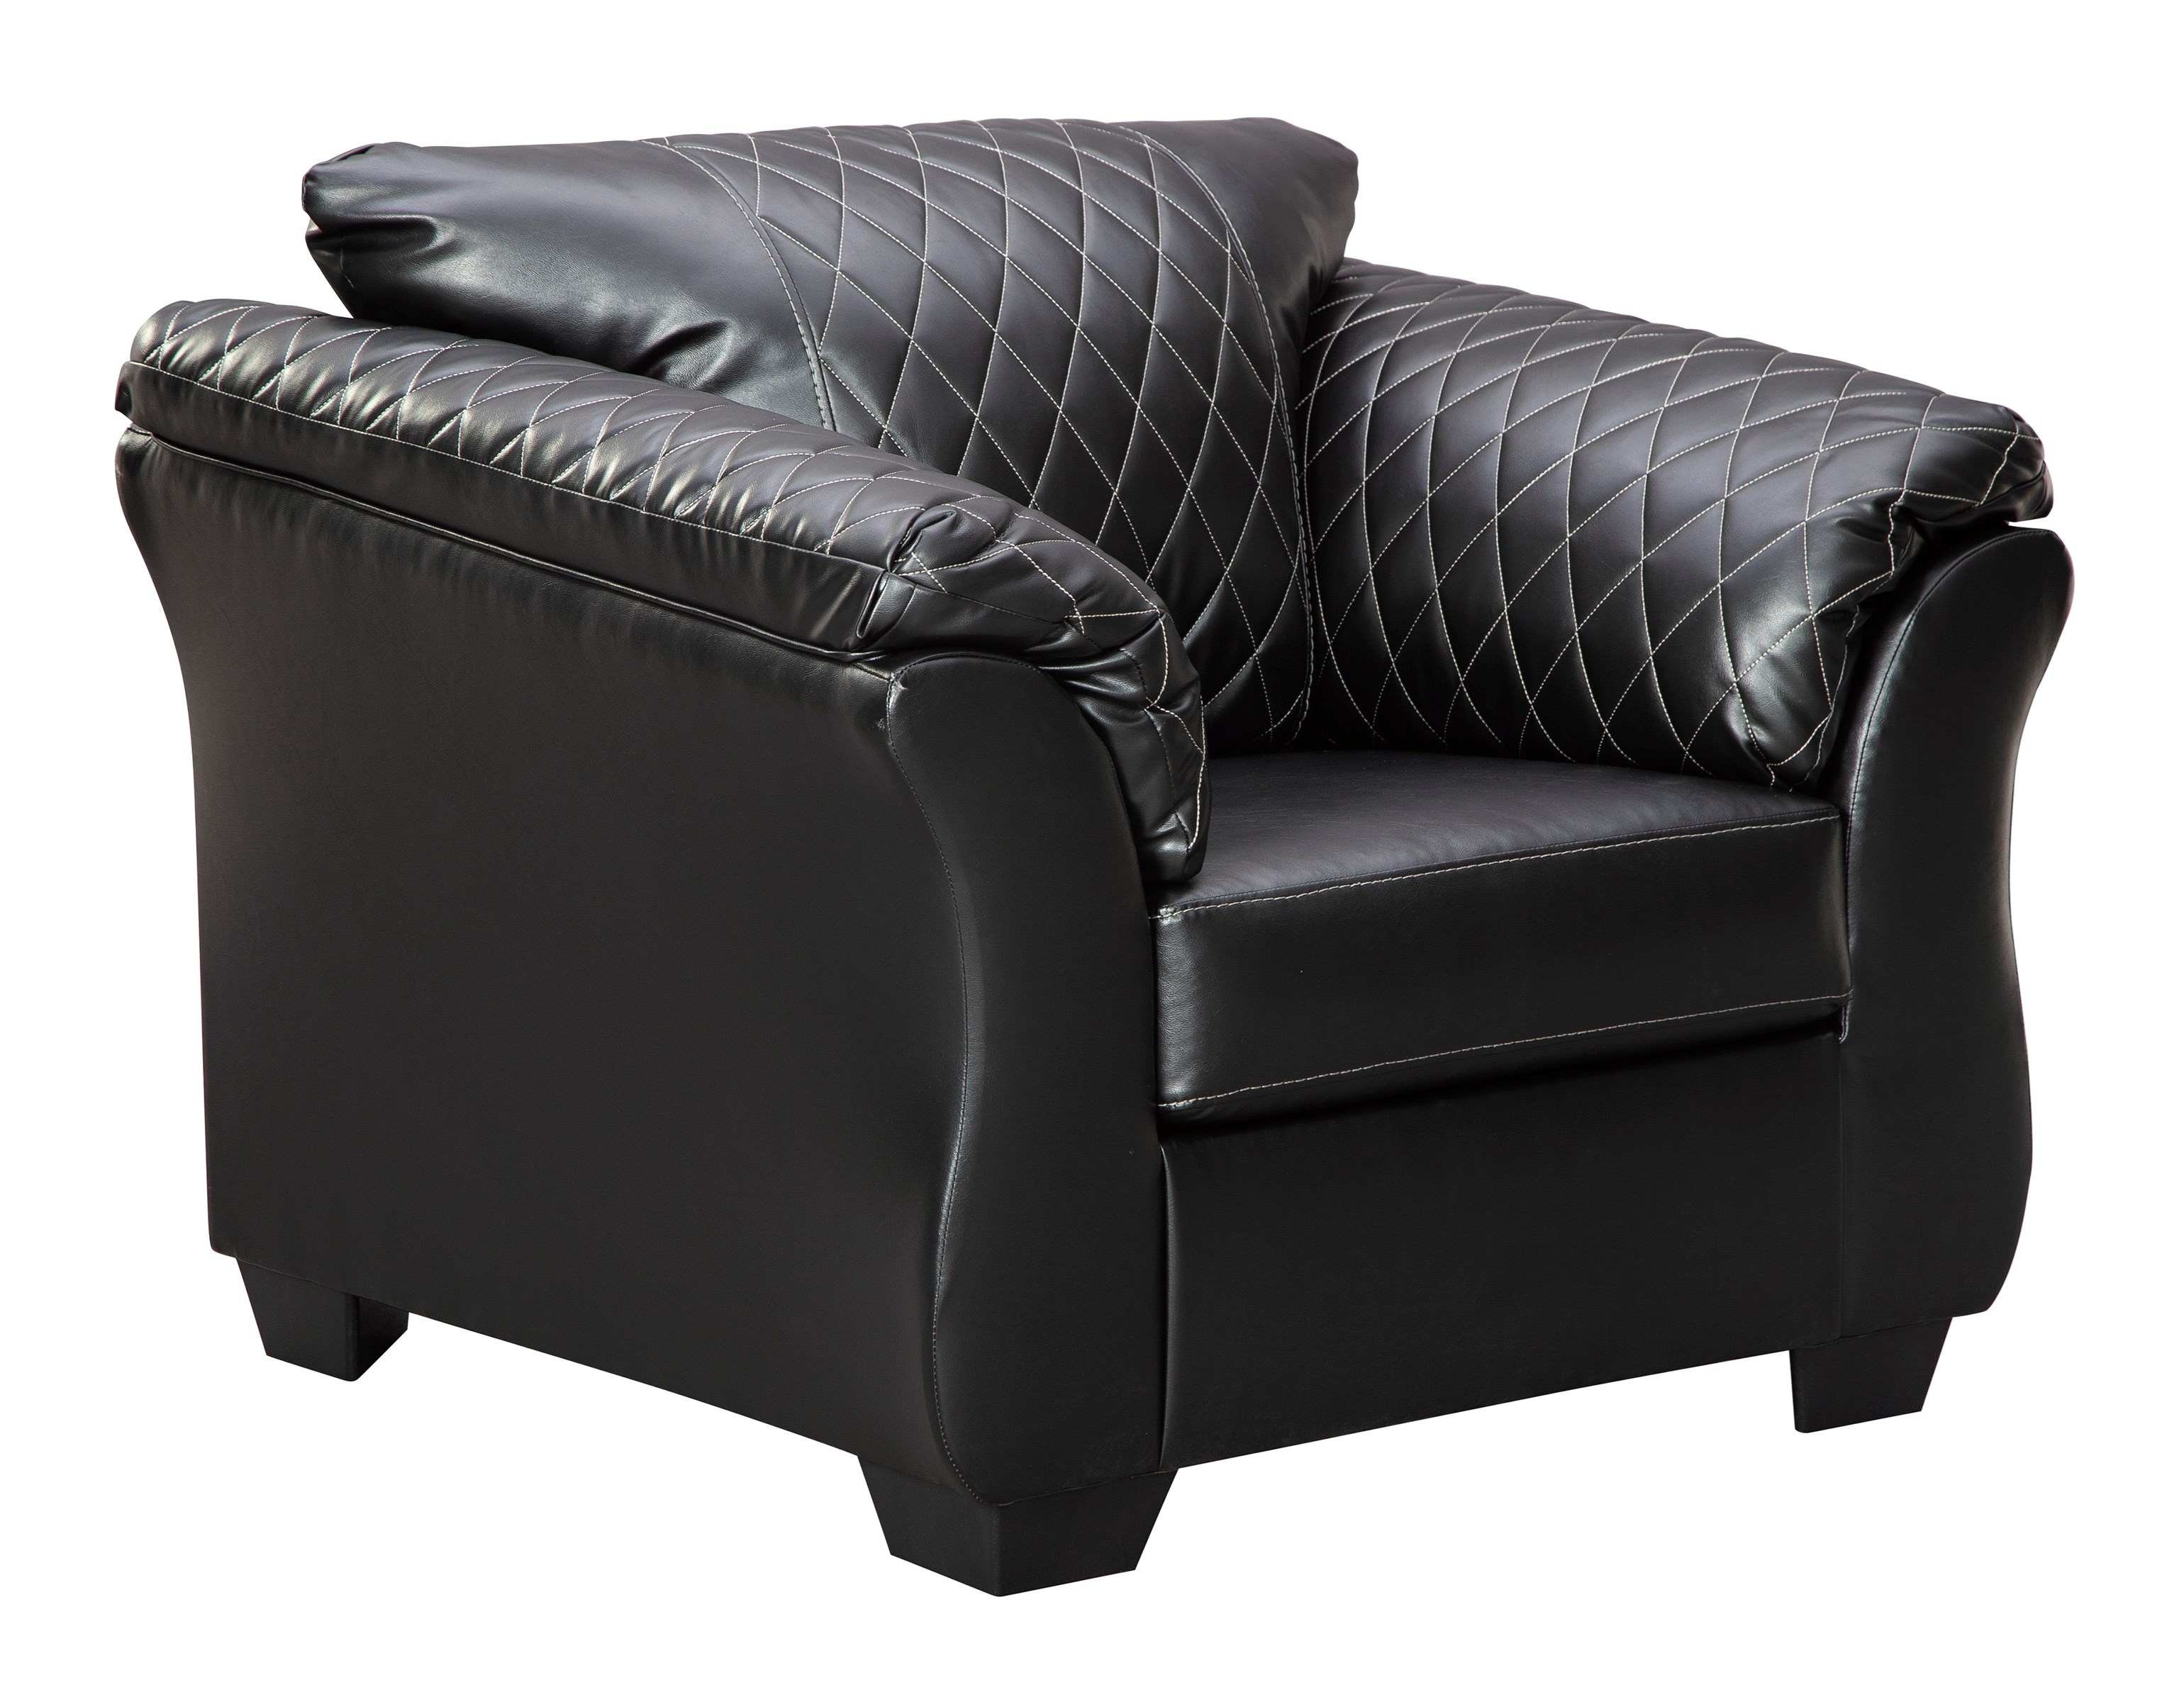 Betrillo Chair by Ashley (Signature Design) at Johnny Janosik